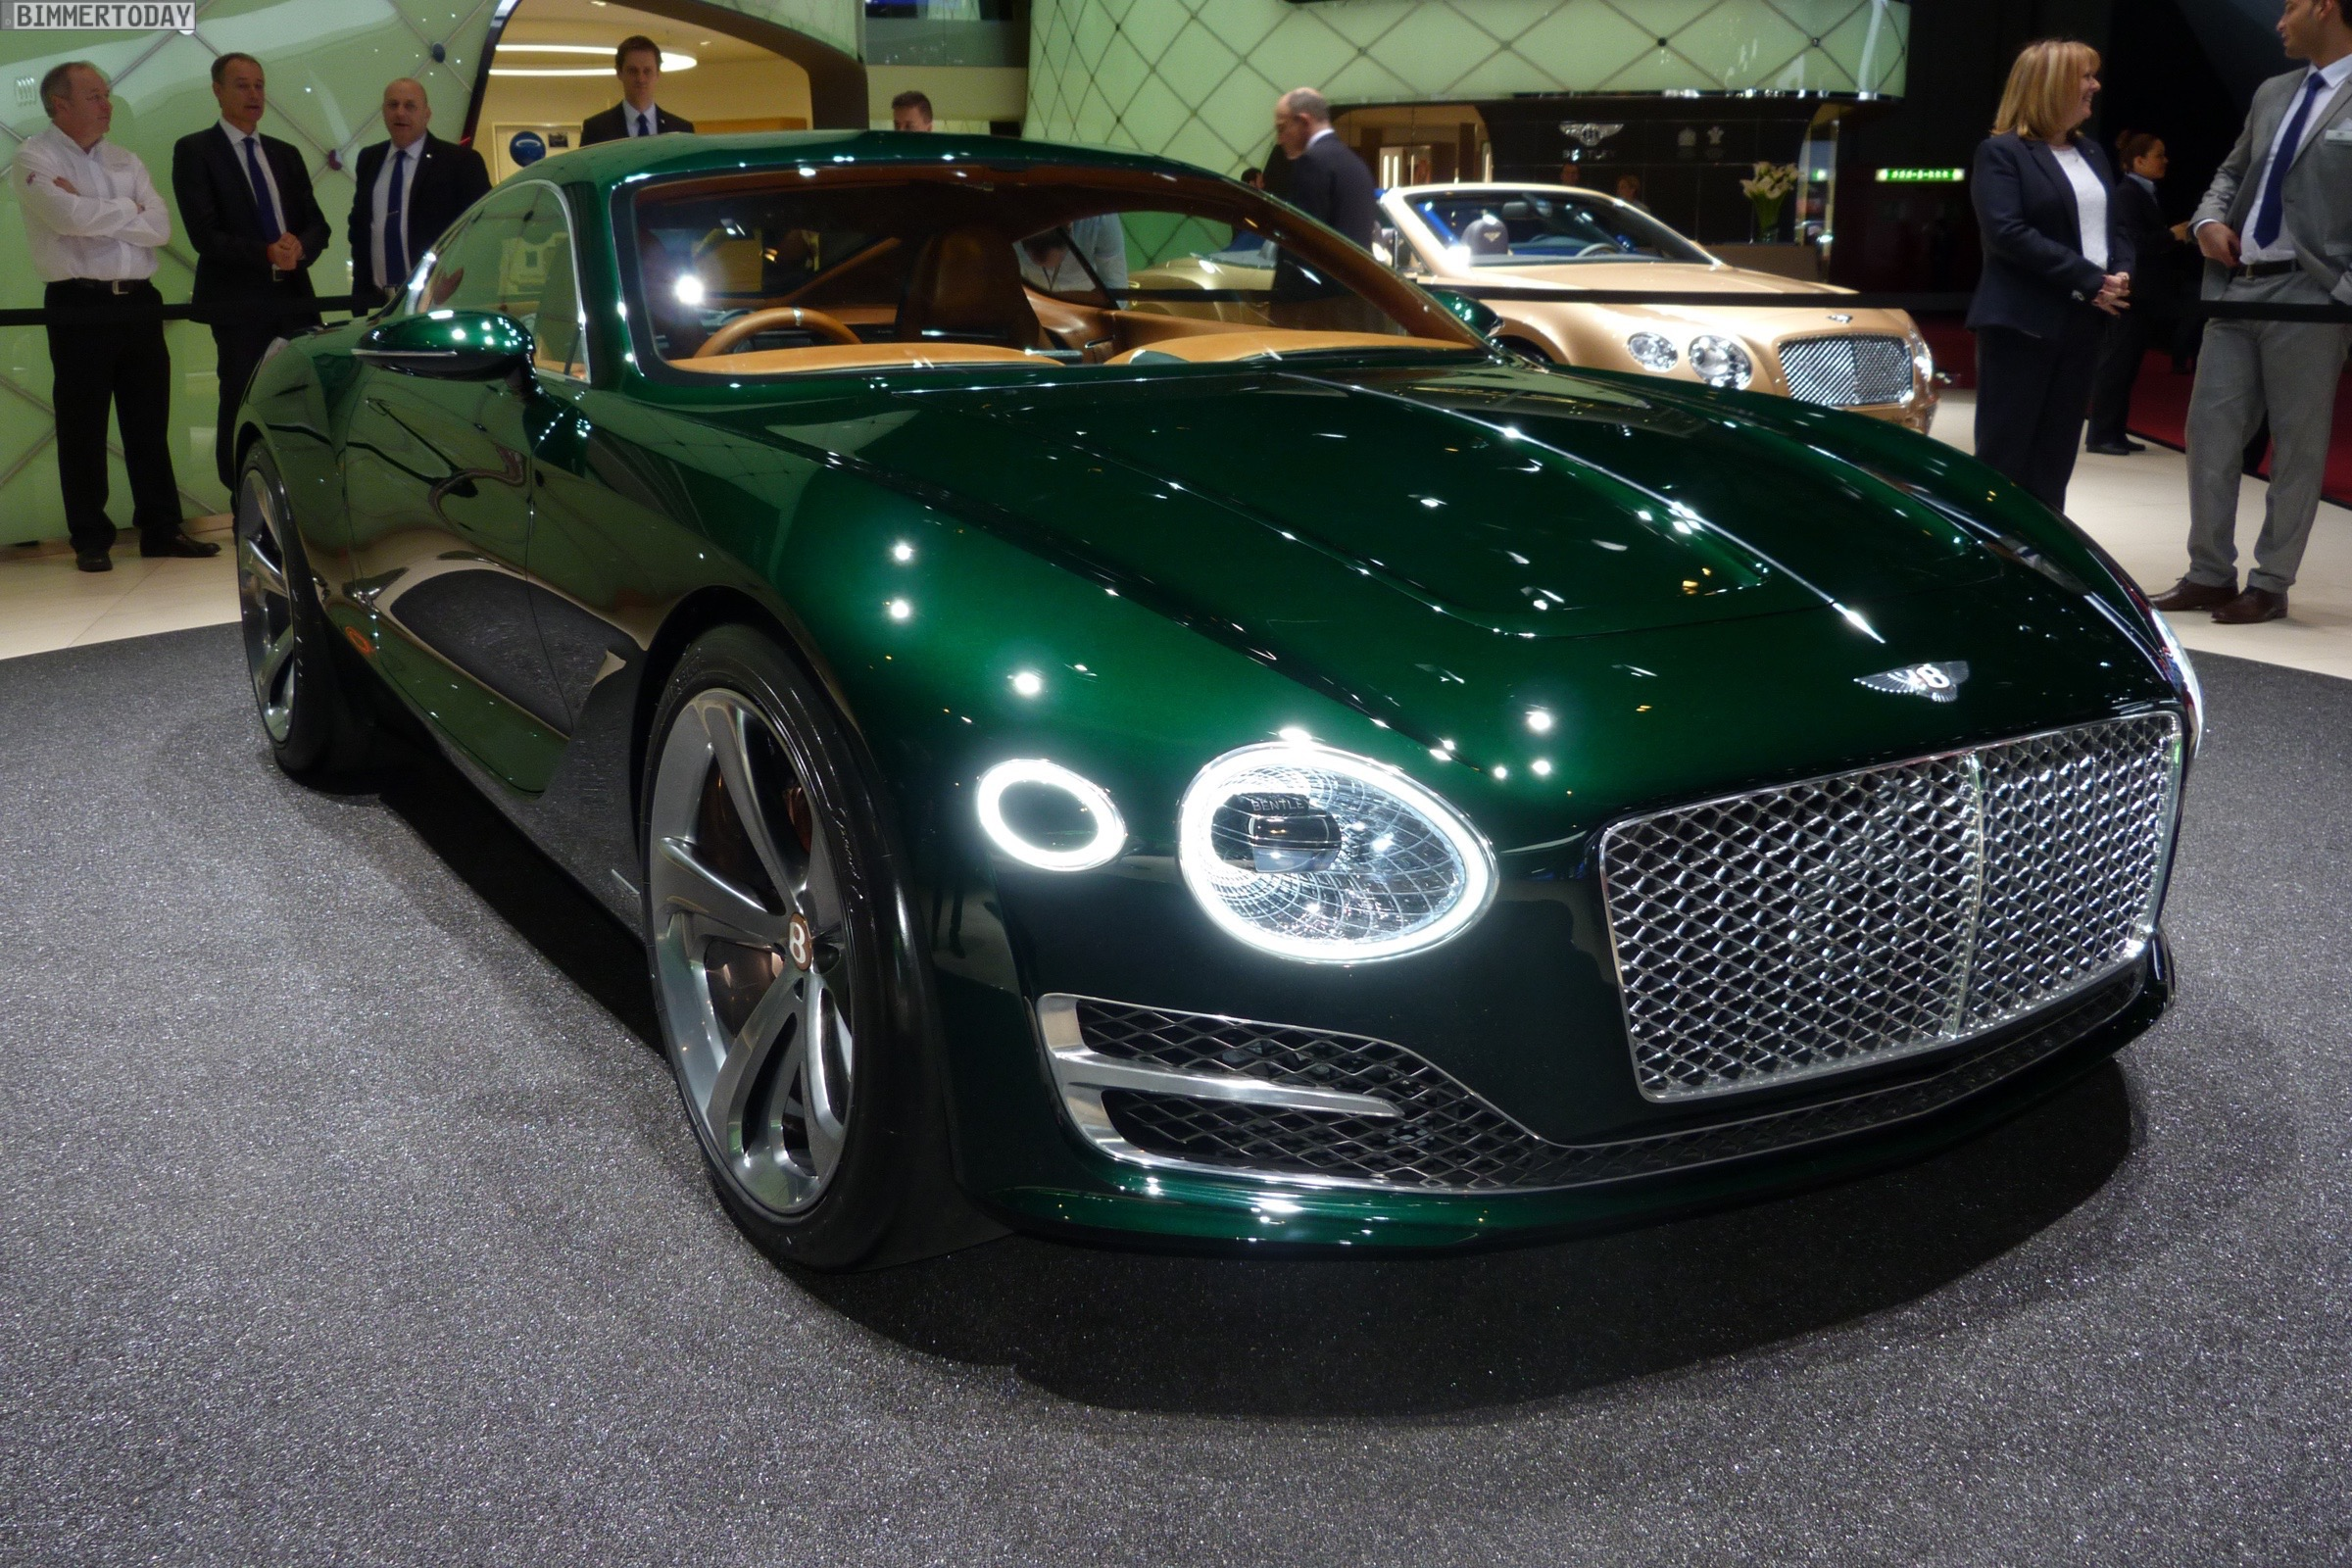 Bentley EXP 10 Speed 6 Concept Car 2015 Genf Autosalon Live 11